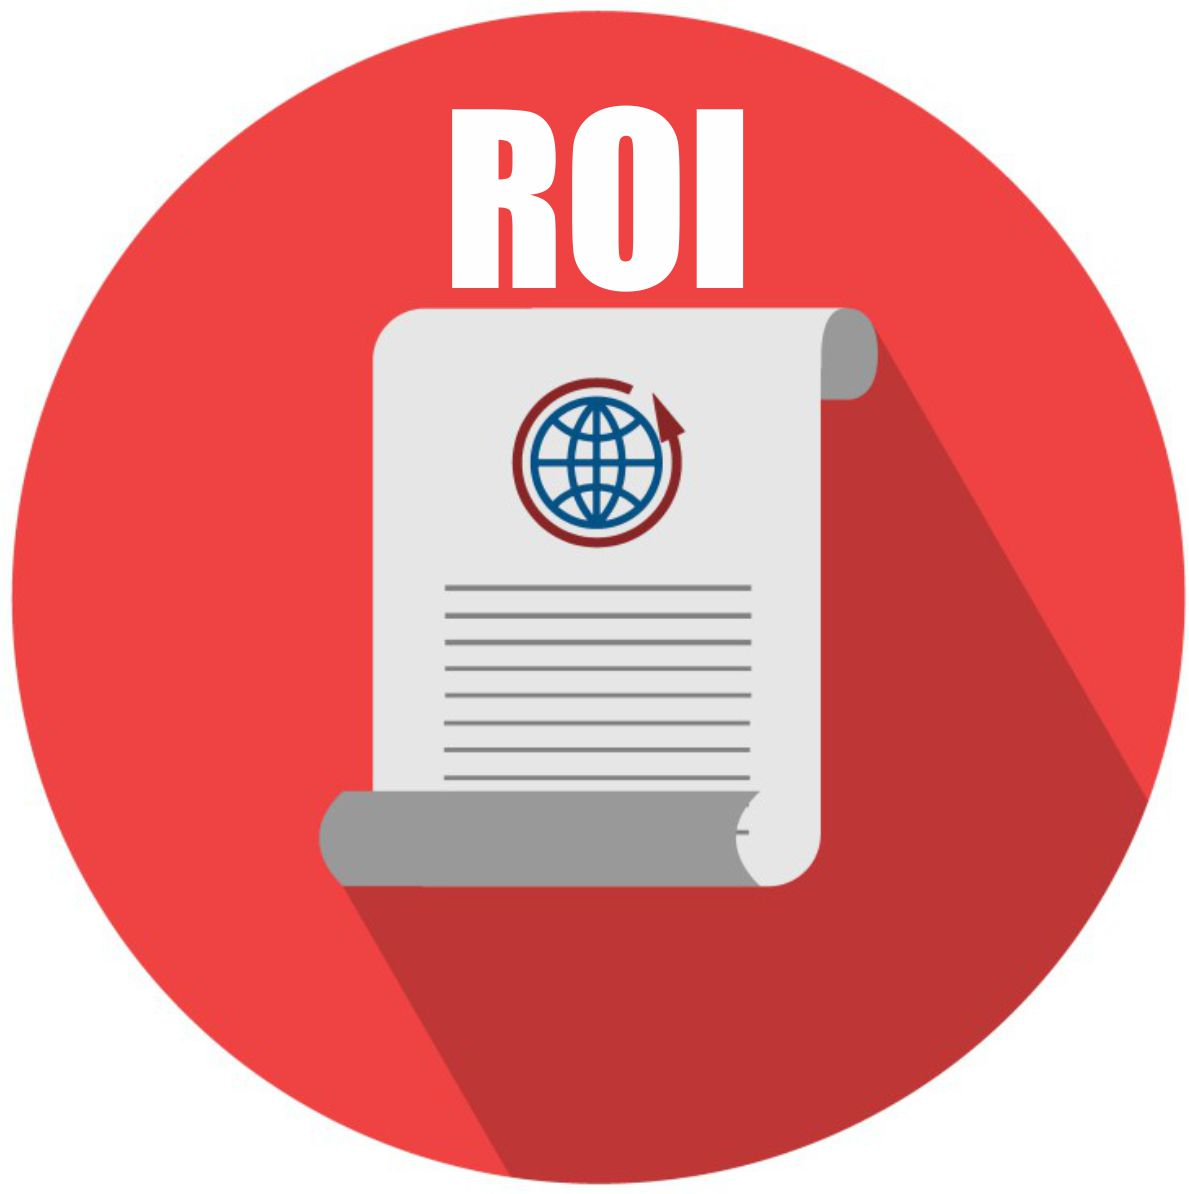 ROI Certification